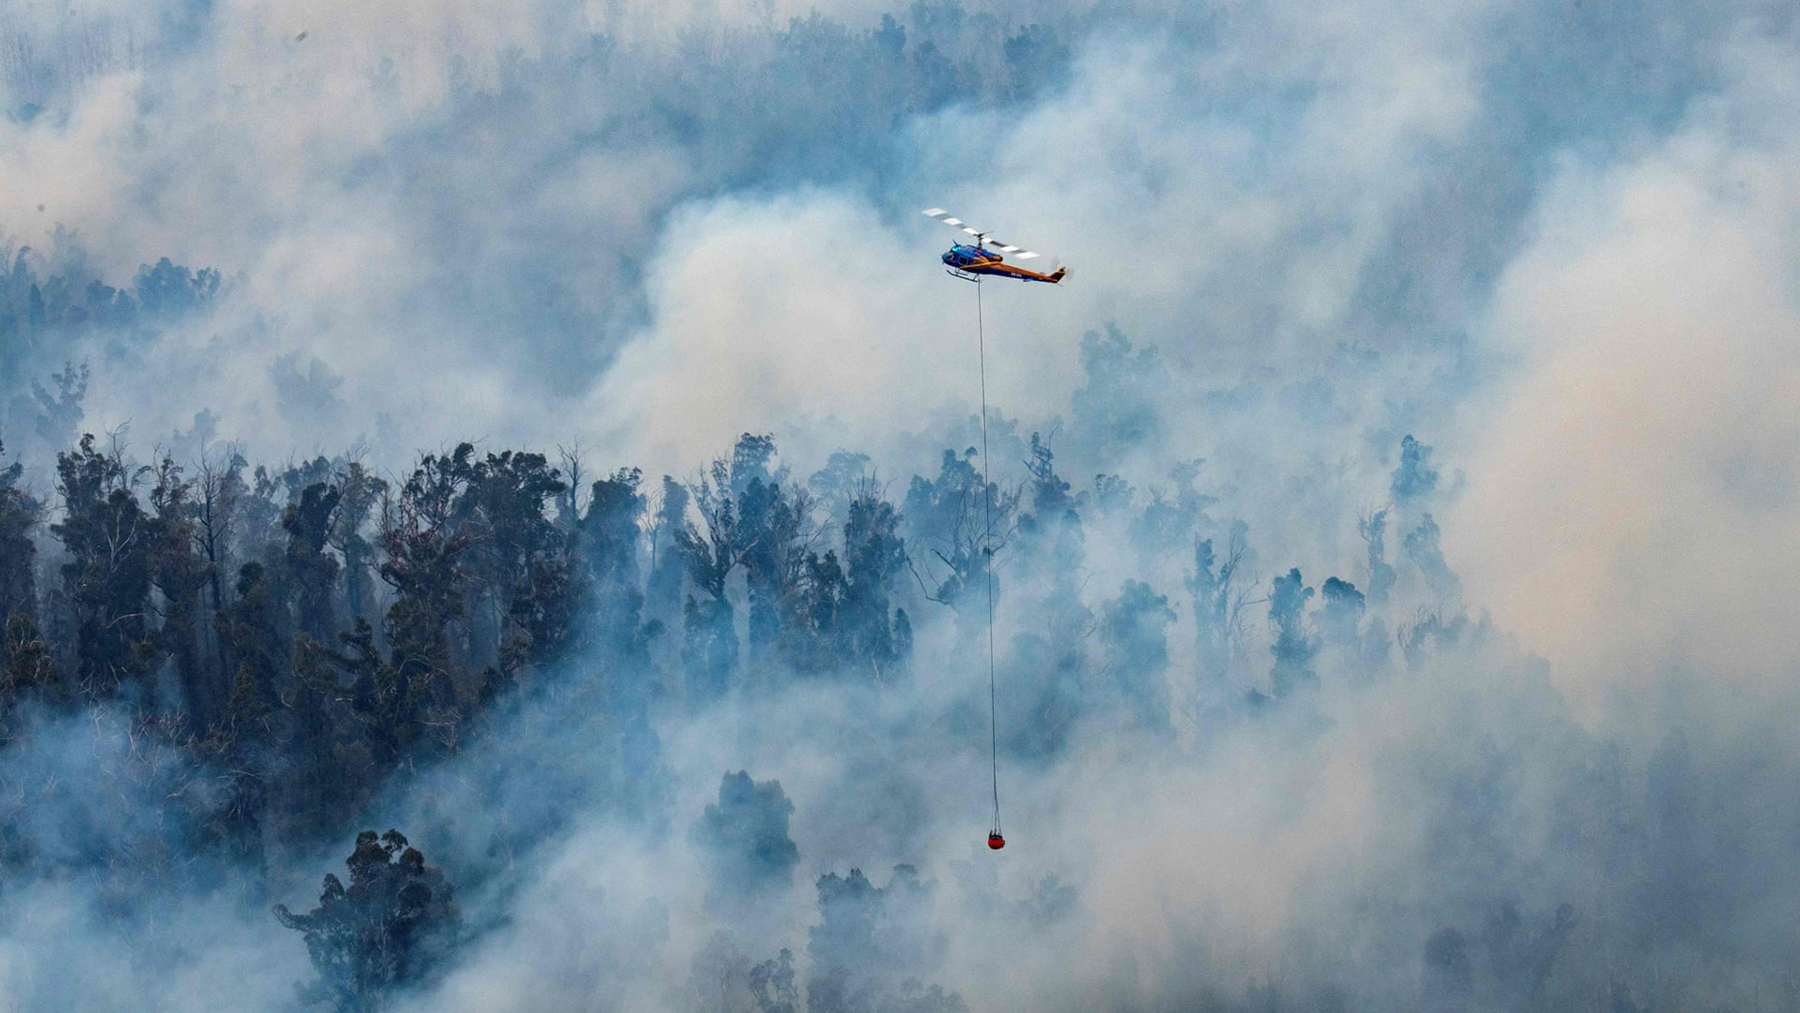 A helicopter dumps water on a fire in Victoria's East Gippsland region on Dec. 30, 2019. Fires continued to rage in Australia into 2020, causing fatalities and compromising air quality. (Photo courtesy of the Department of Environment, Land, Water and Planning)